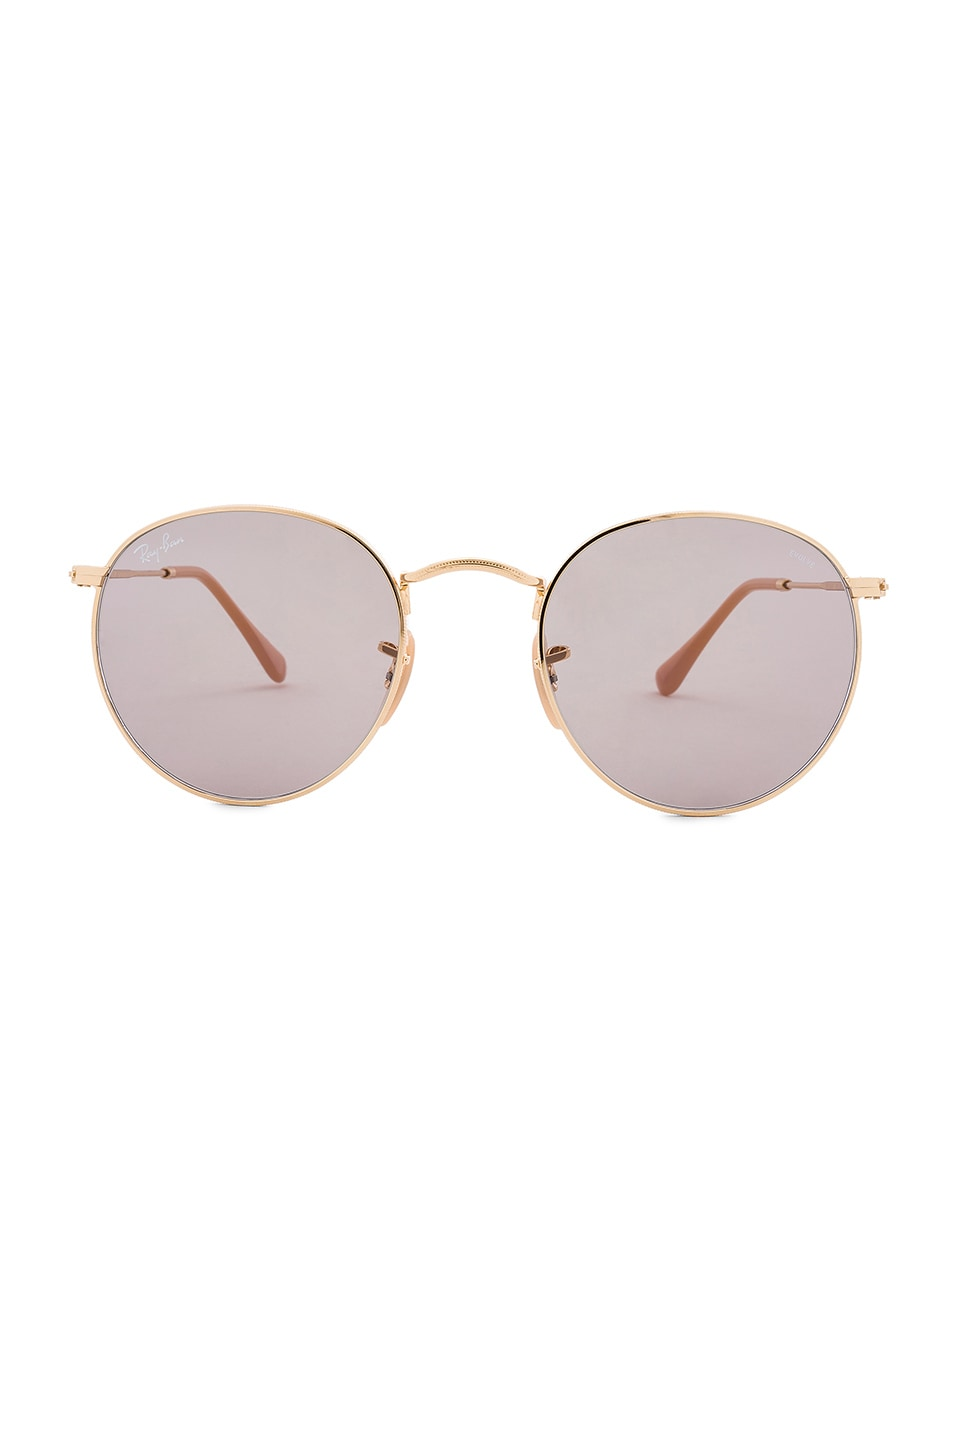 Ray-Ban Round Evolve in Gold & Grey